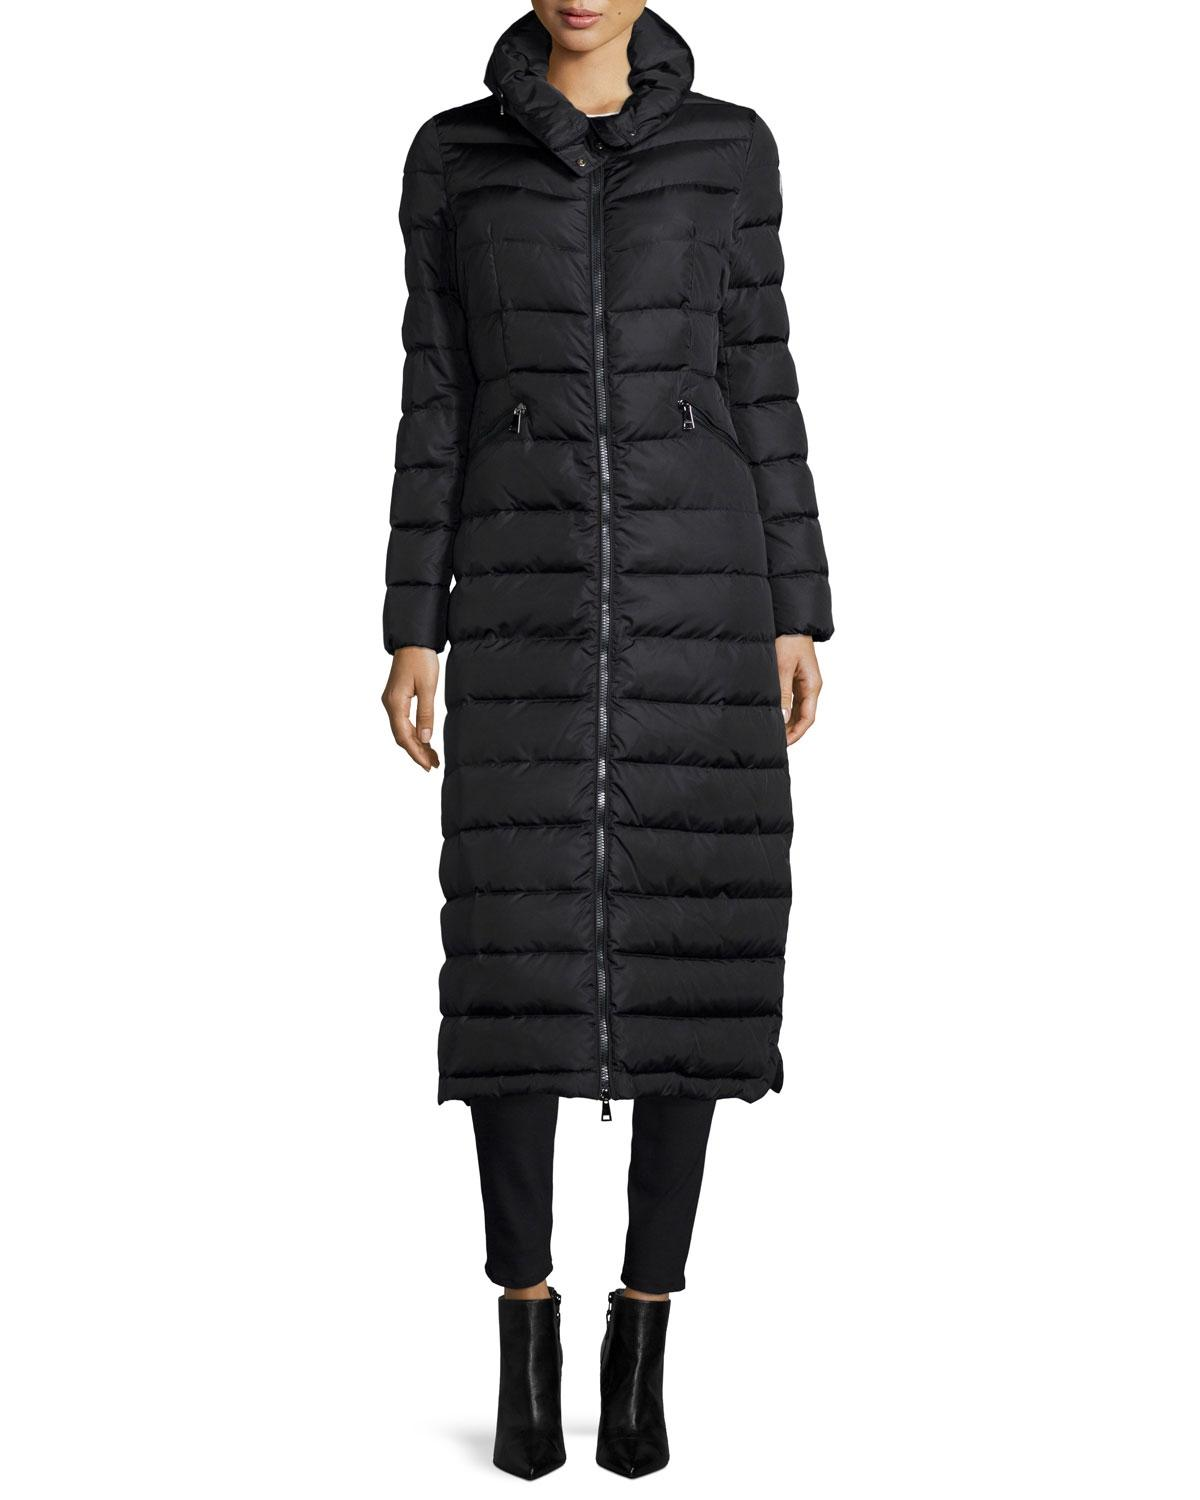 Moncler Fur Jacket Coat. Moncler Black New Flammong Long Puffer ...